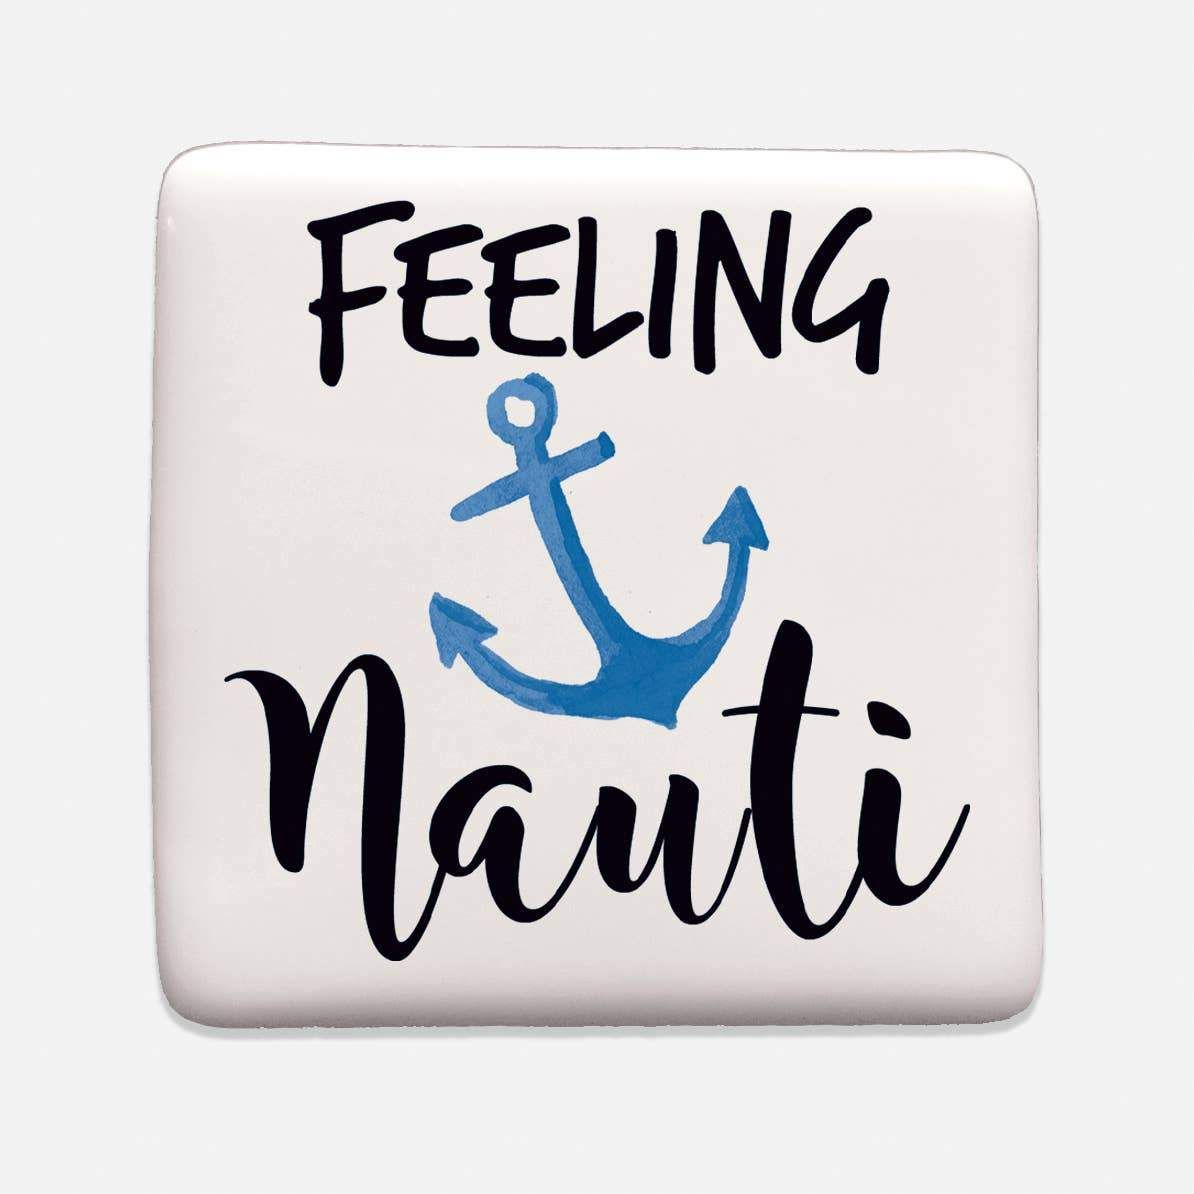 Aimant en céramique Feeling Nauti   – Products